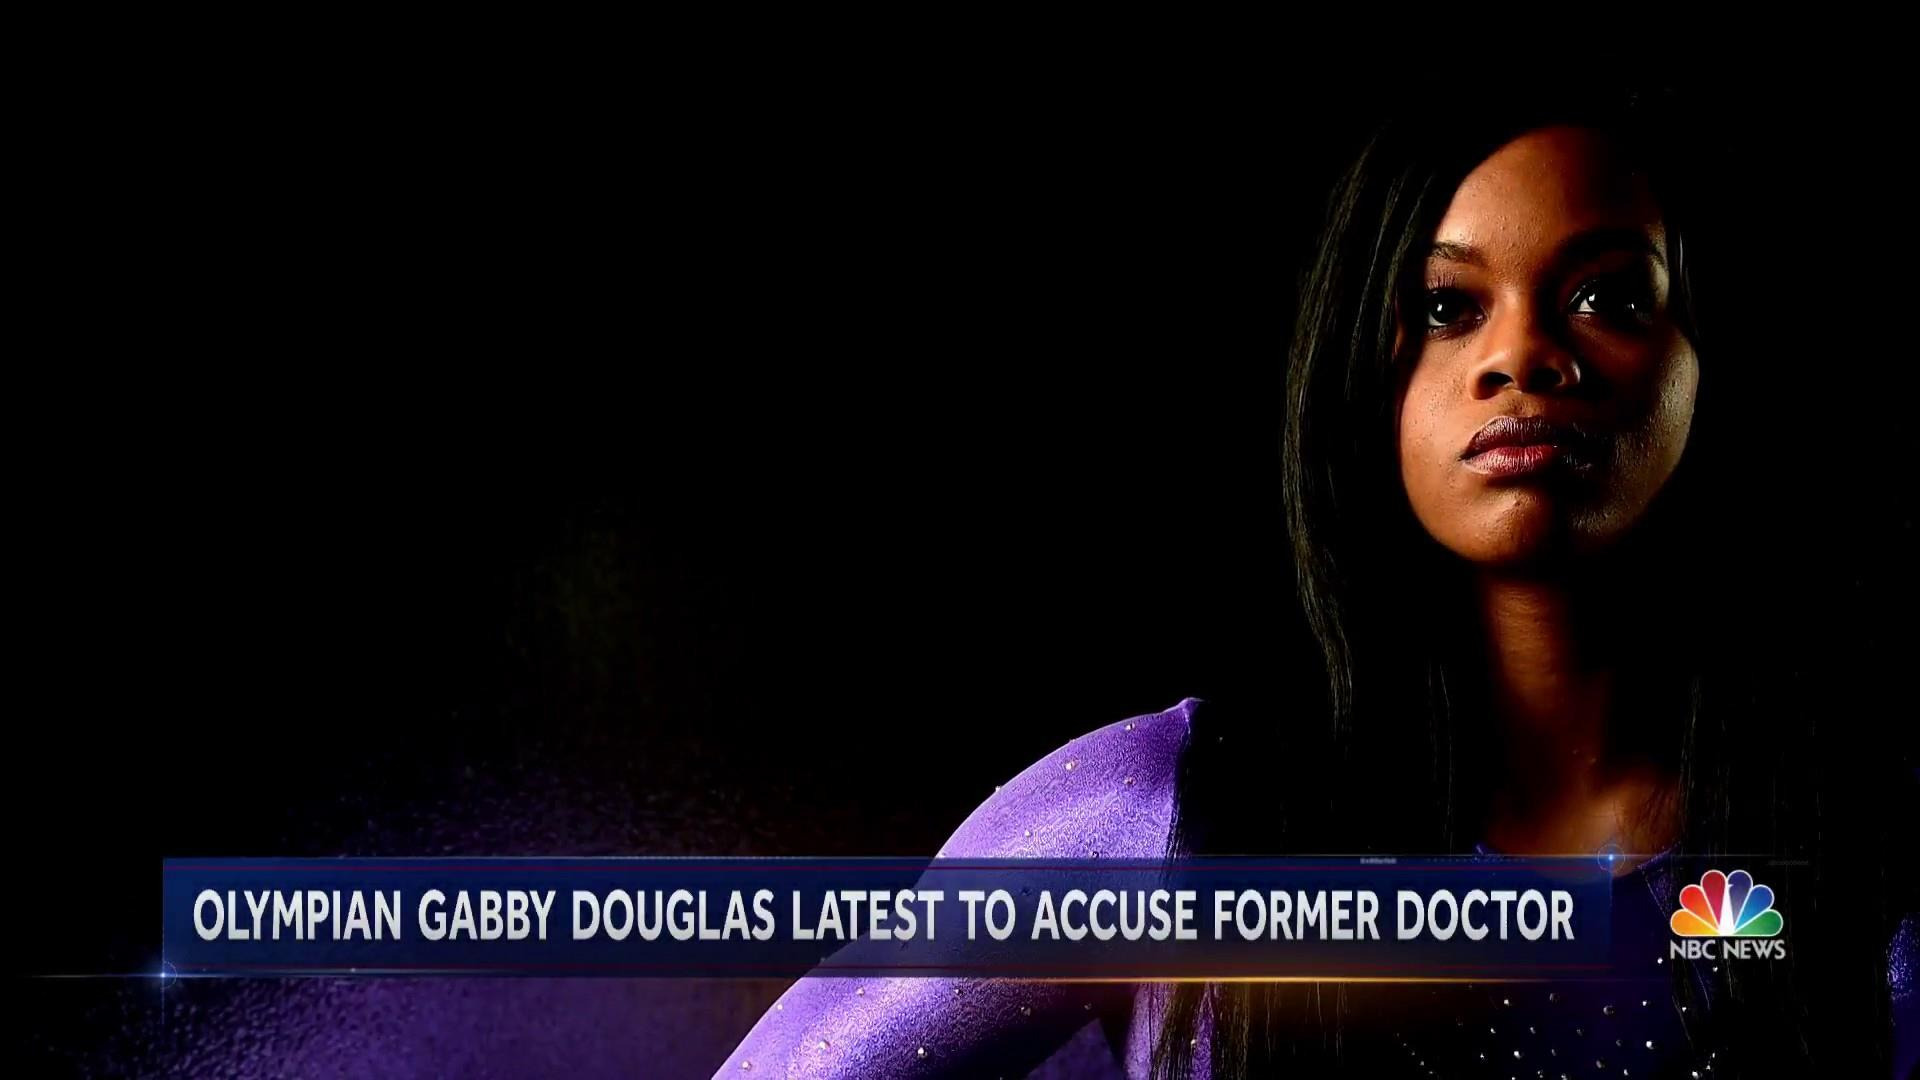 Olympics star gabby douglas says team doctor larry nassar abused her m4hsunfo